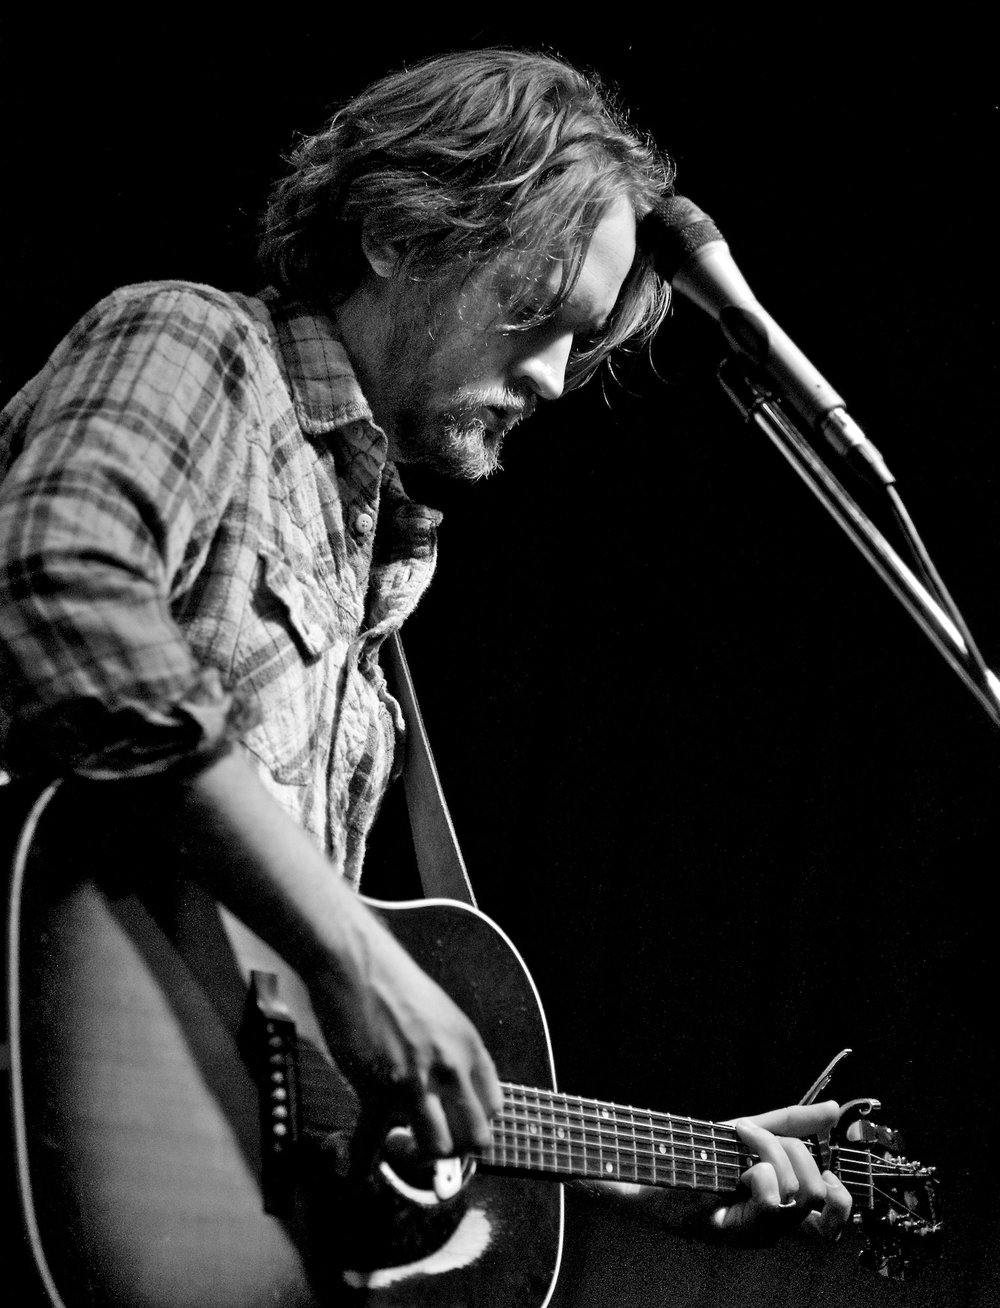 Hayes Carll performs at The Continental Club, Houston, TX. January 14, 2012